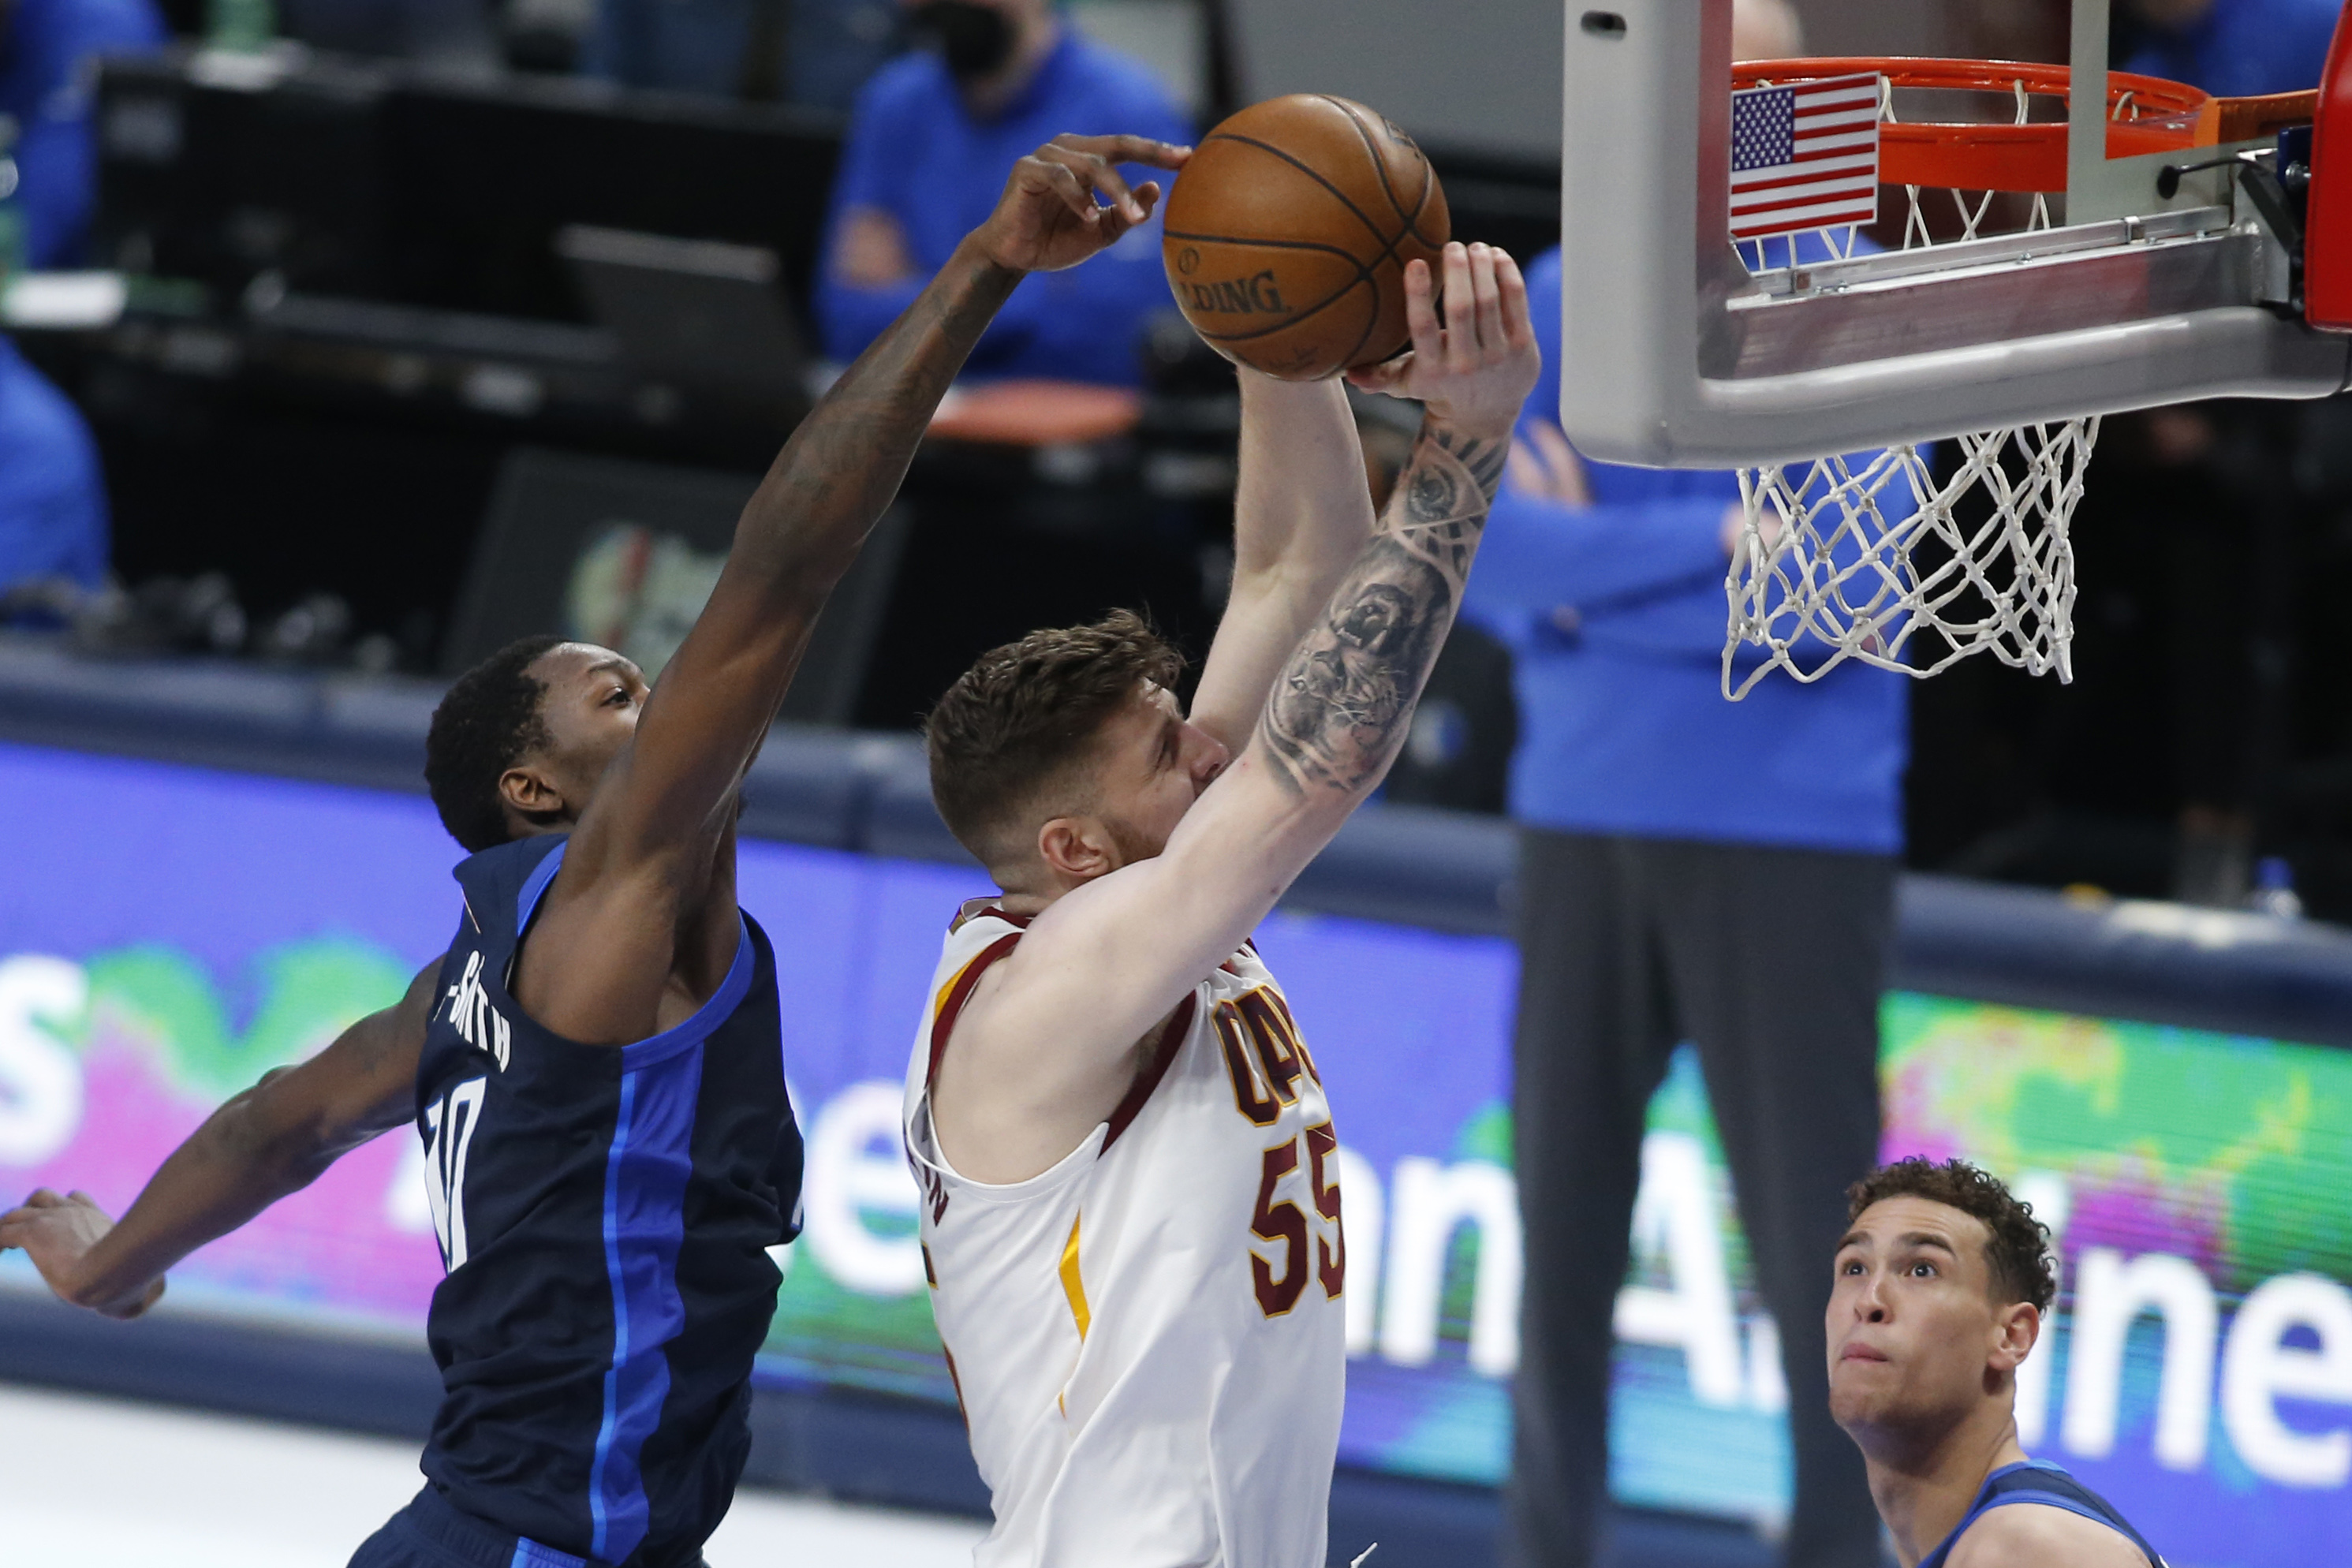 May 7, 2021; Dallas, Texas, USA; Dallas Mavericks forward Dorian Finney-Smith (10) blocks the shot of Cleveland Cavaliers center Isaiah Hartenstein (55) during the third quarter at American Airlines Center. Mandatory Credit: Tim Heitman-USA TODAY Sports